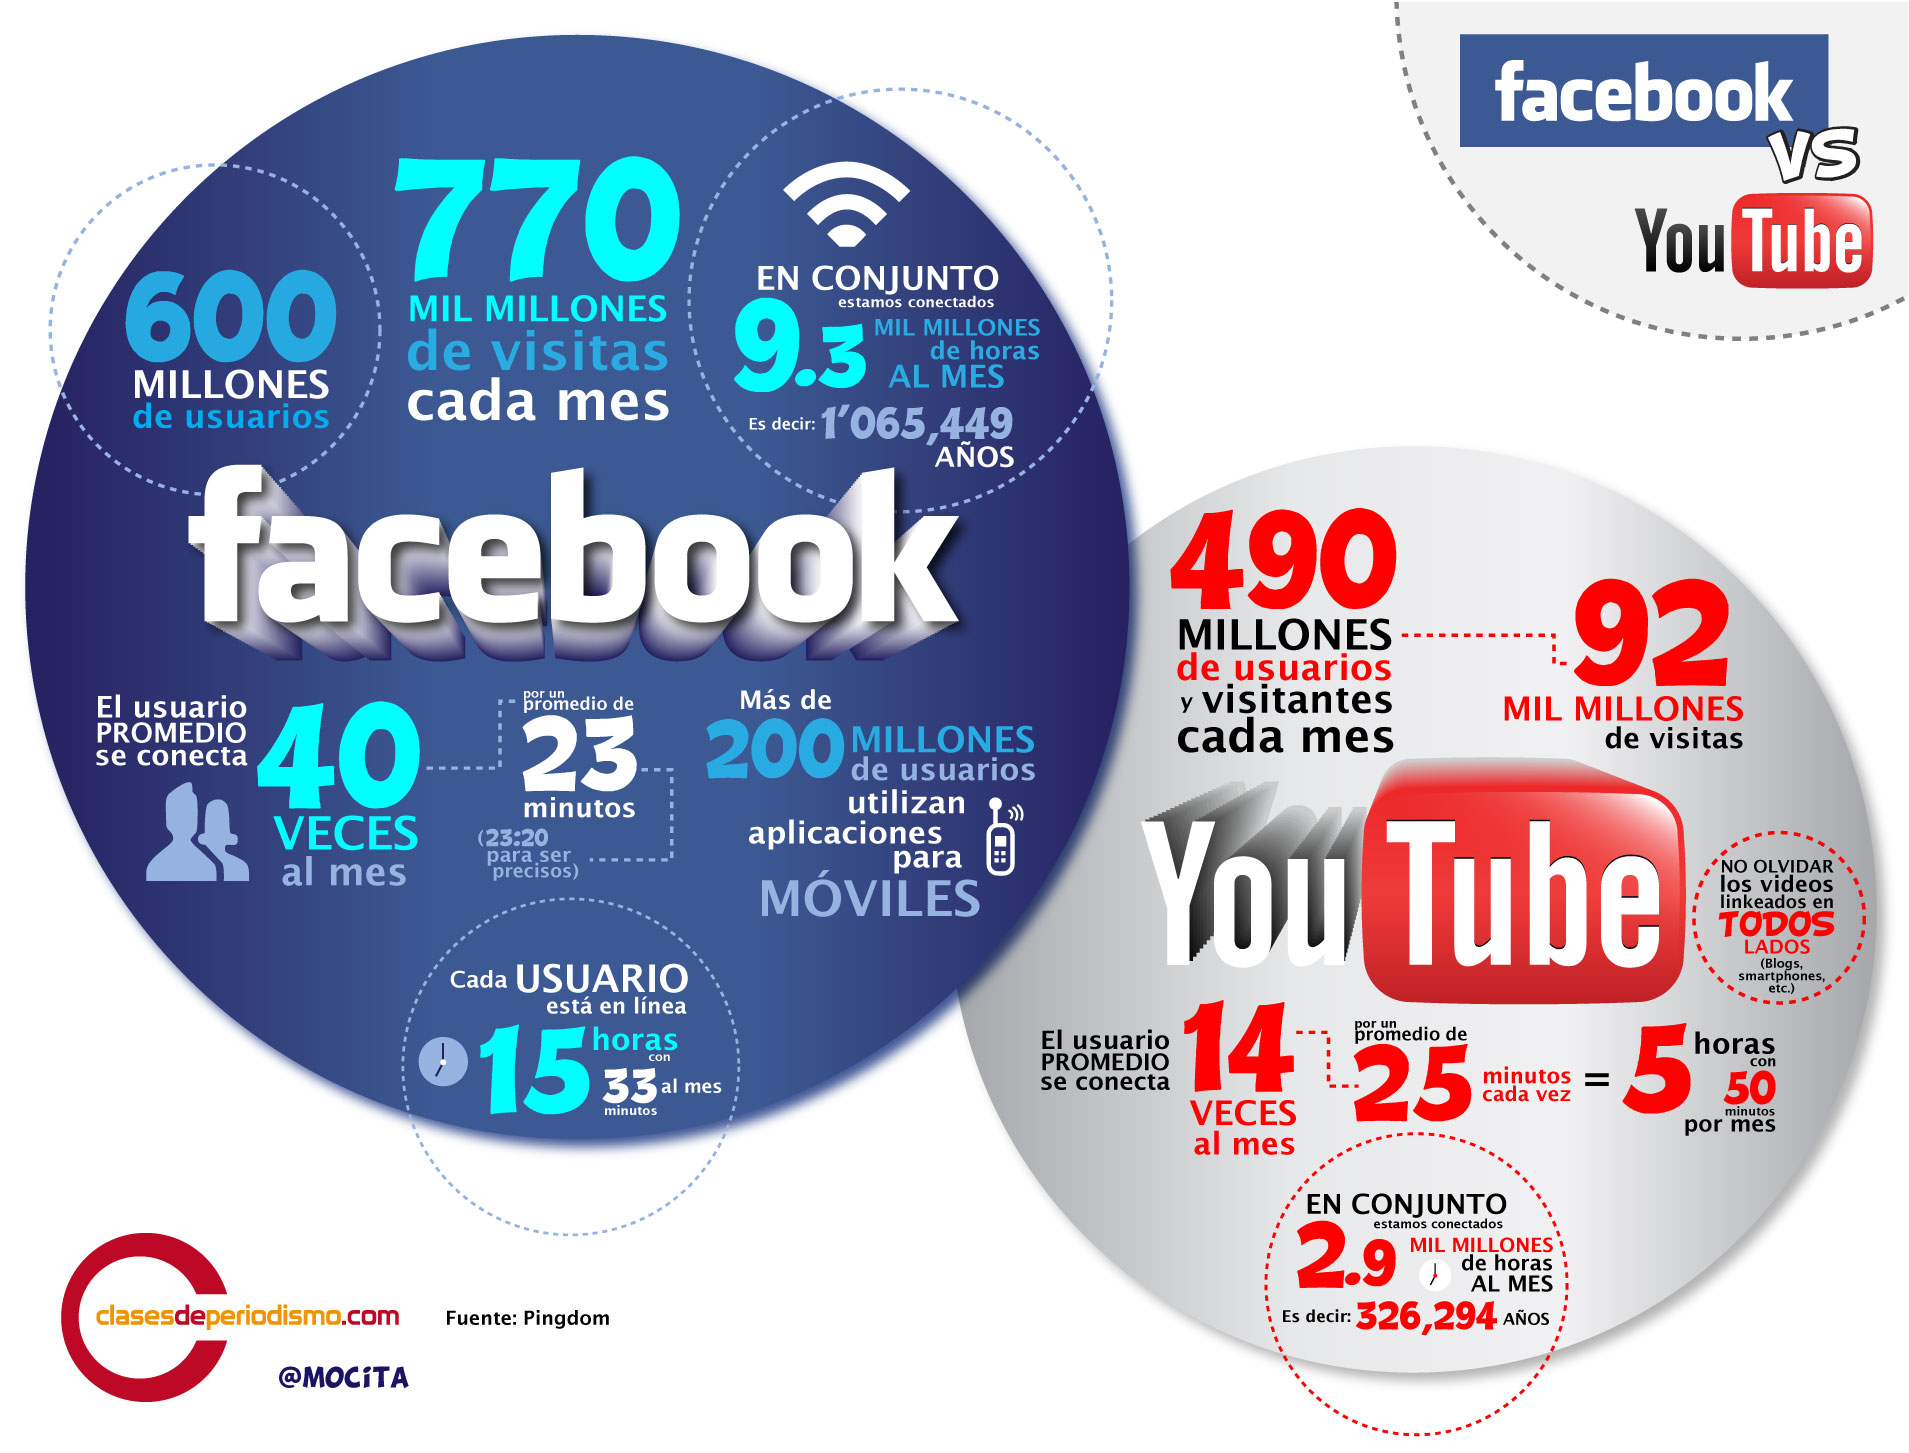 Facebook frente a YouTube